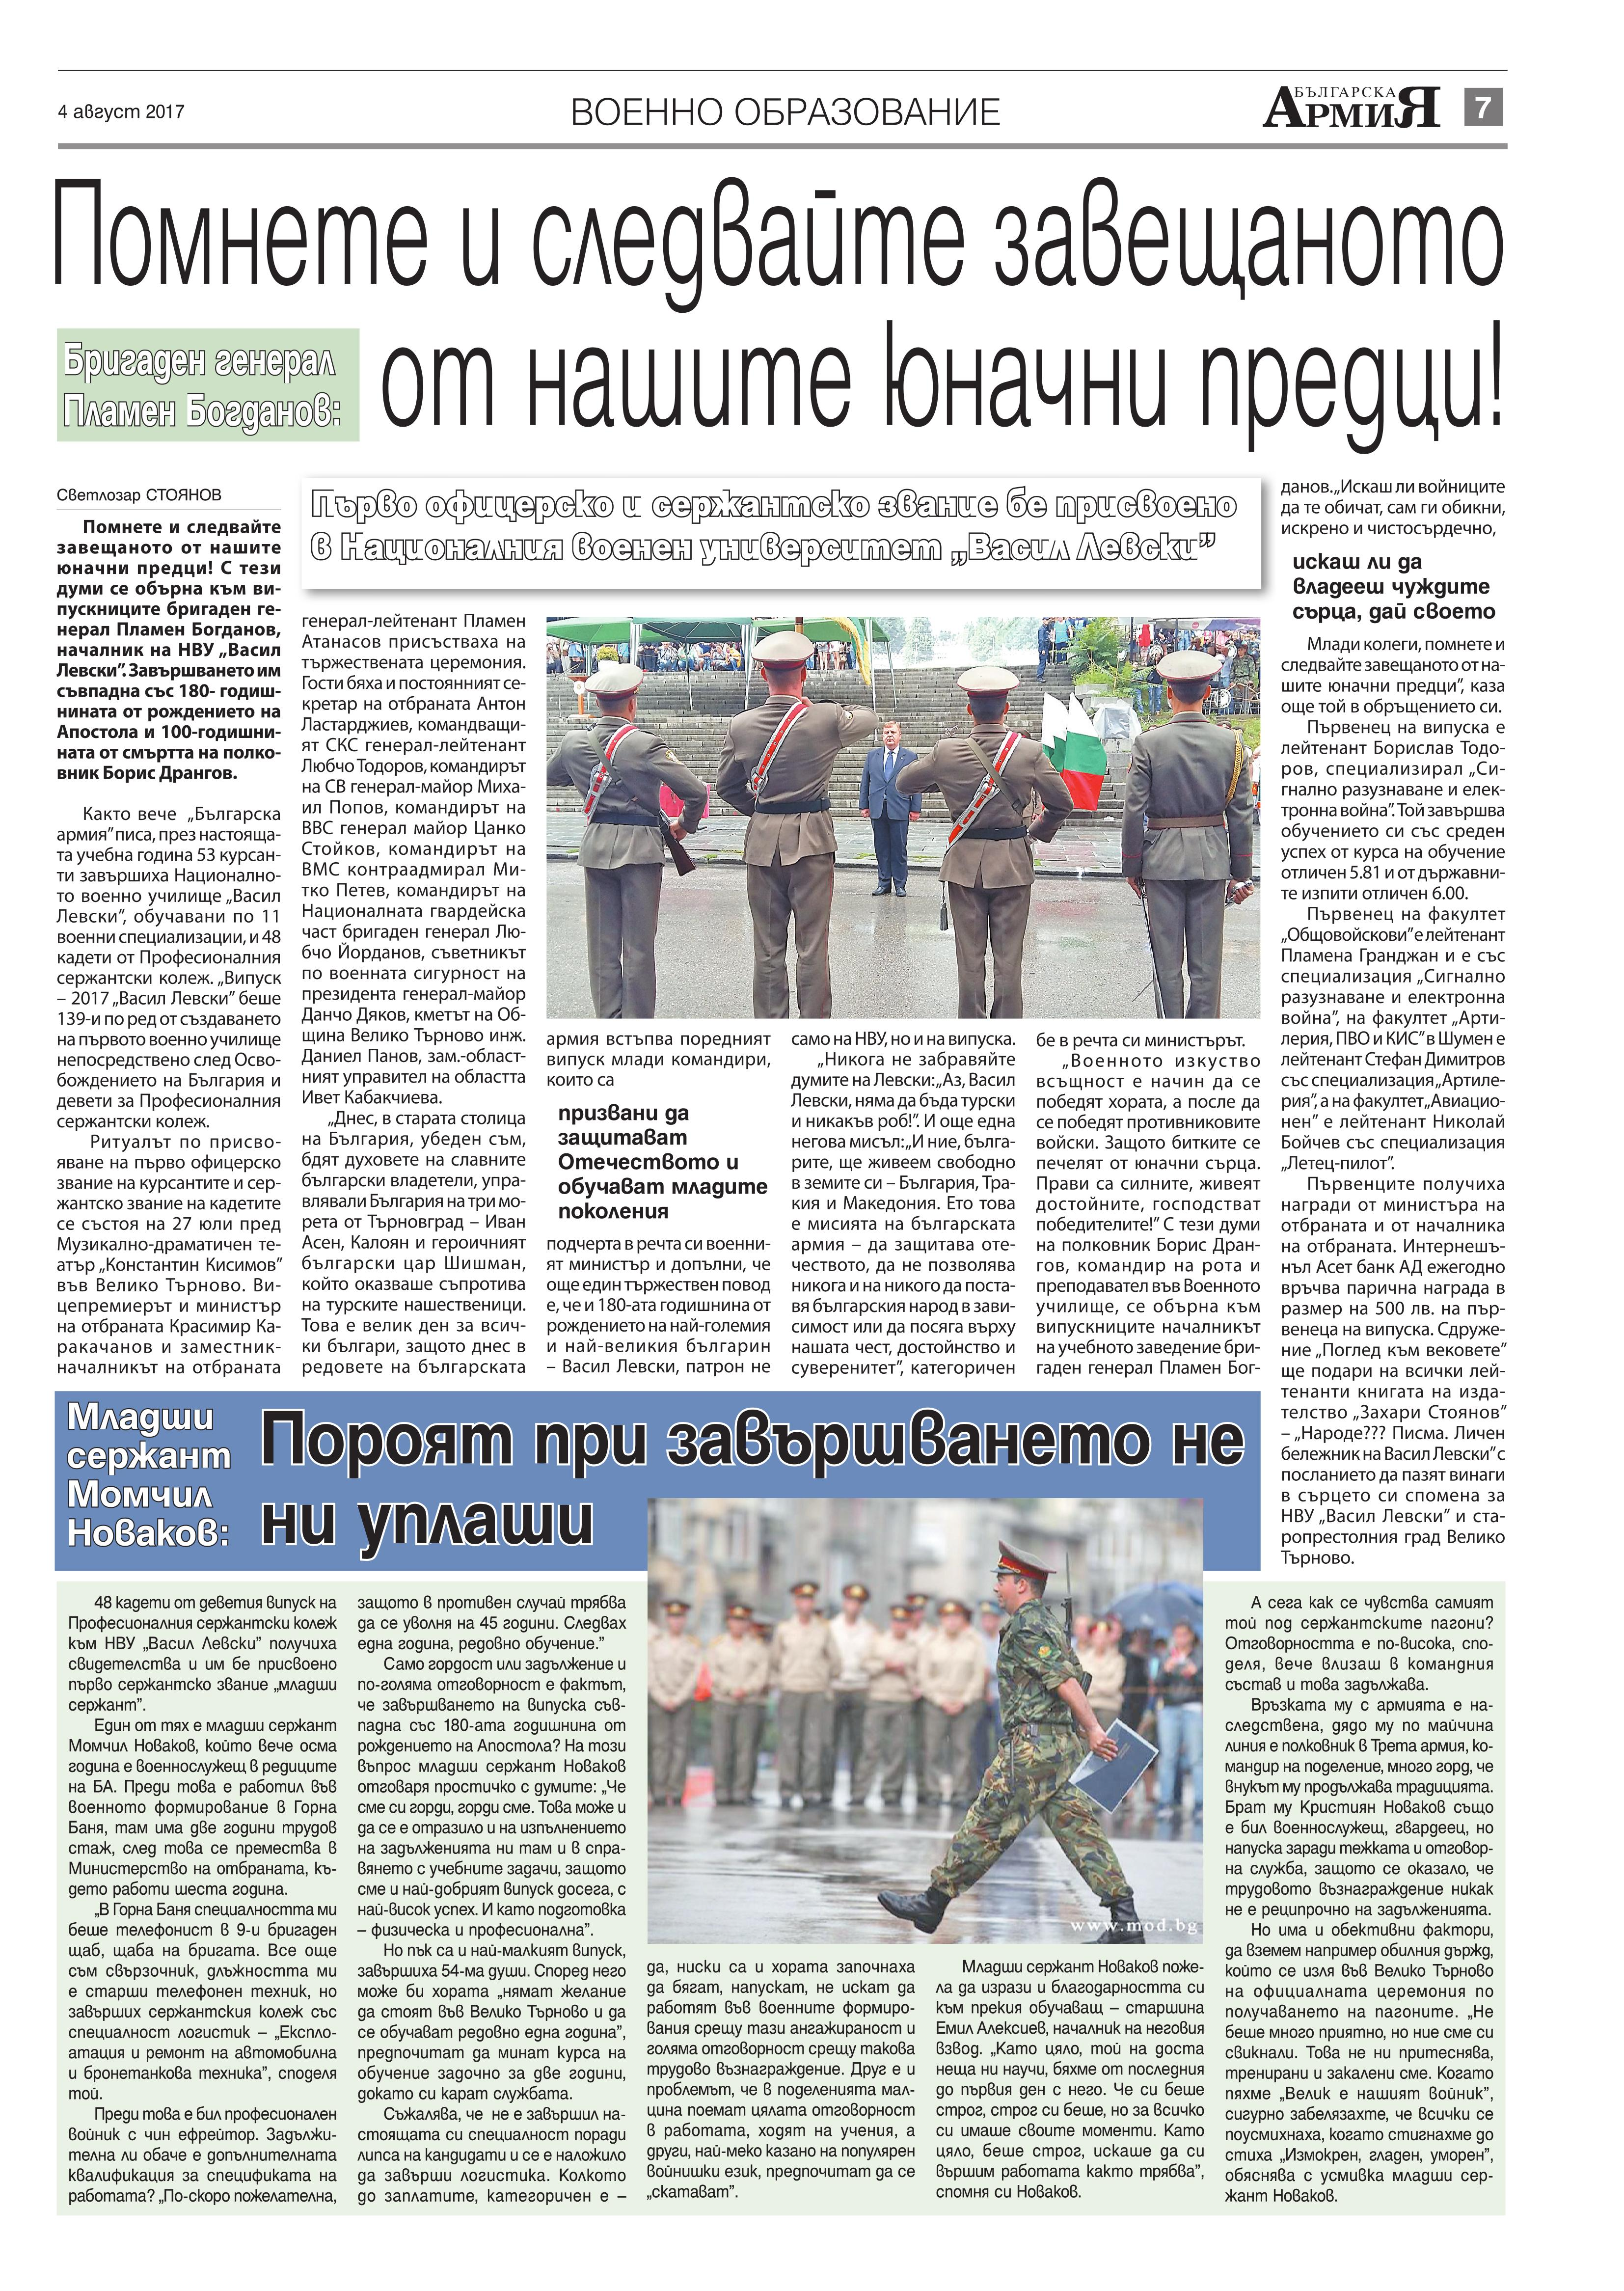 https://www.armymedia.bg/wp-content/uploads/2015/06/07.page1_-27.jpg